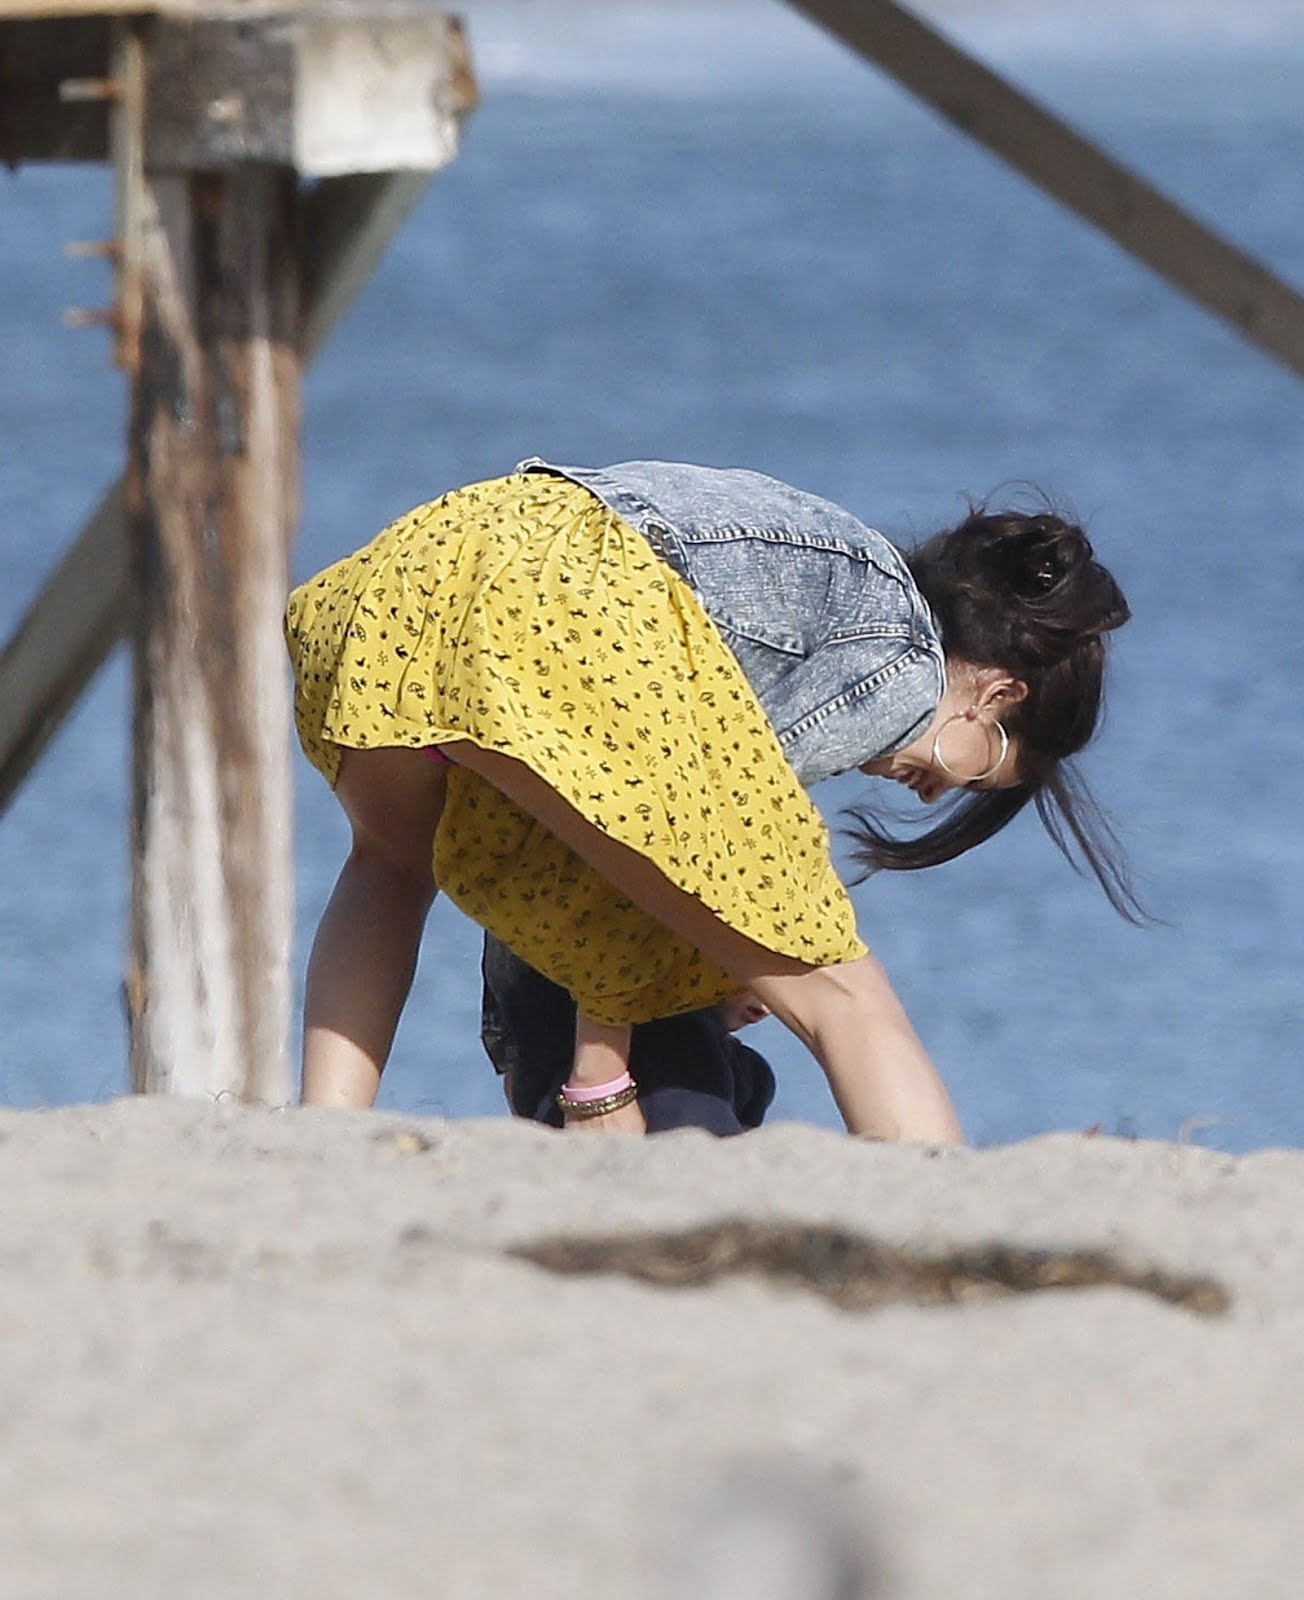 What Selena gomez beach upskirt excellent message